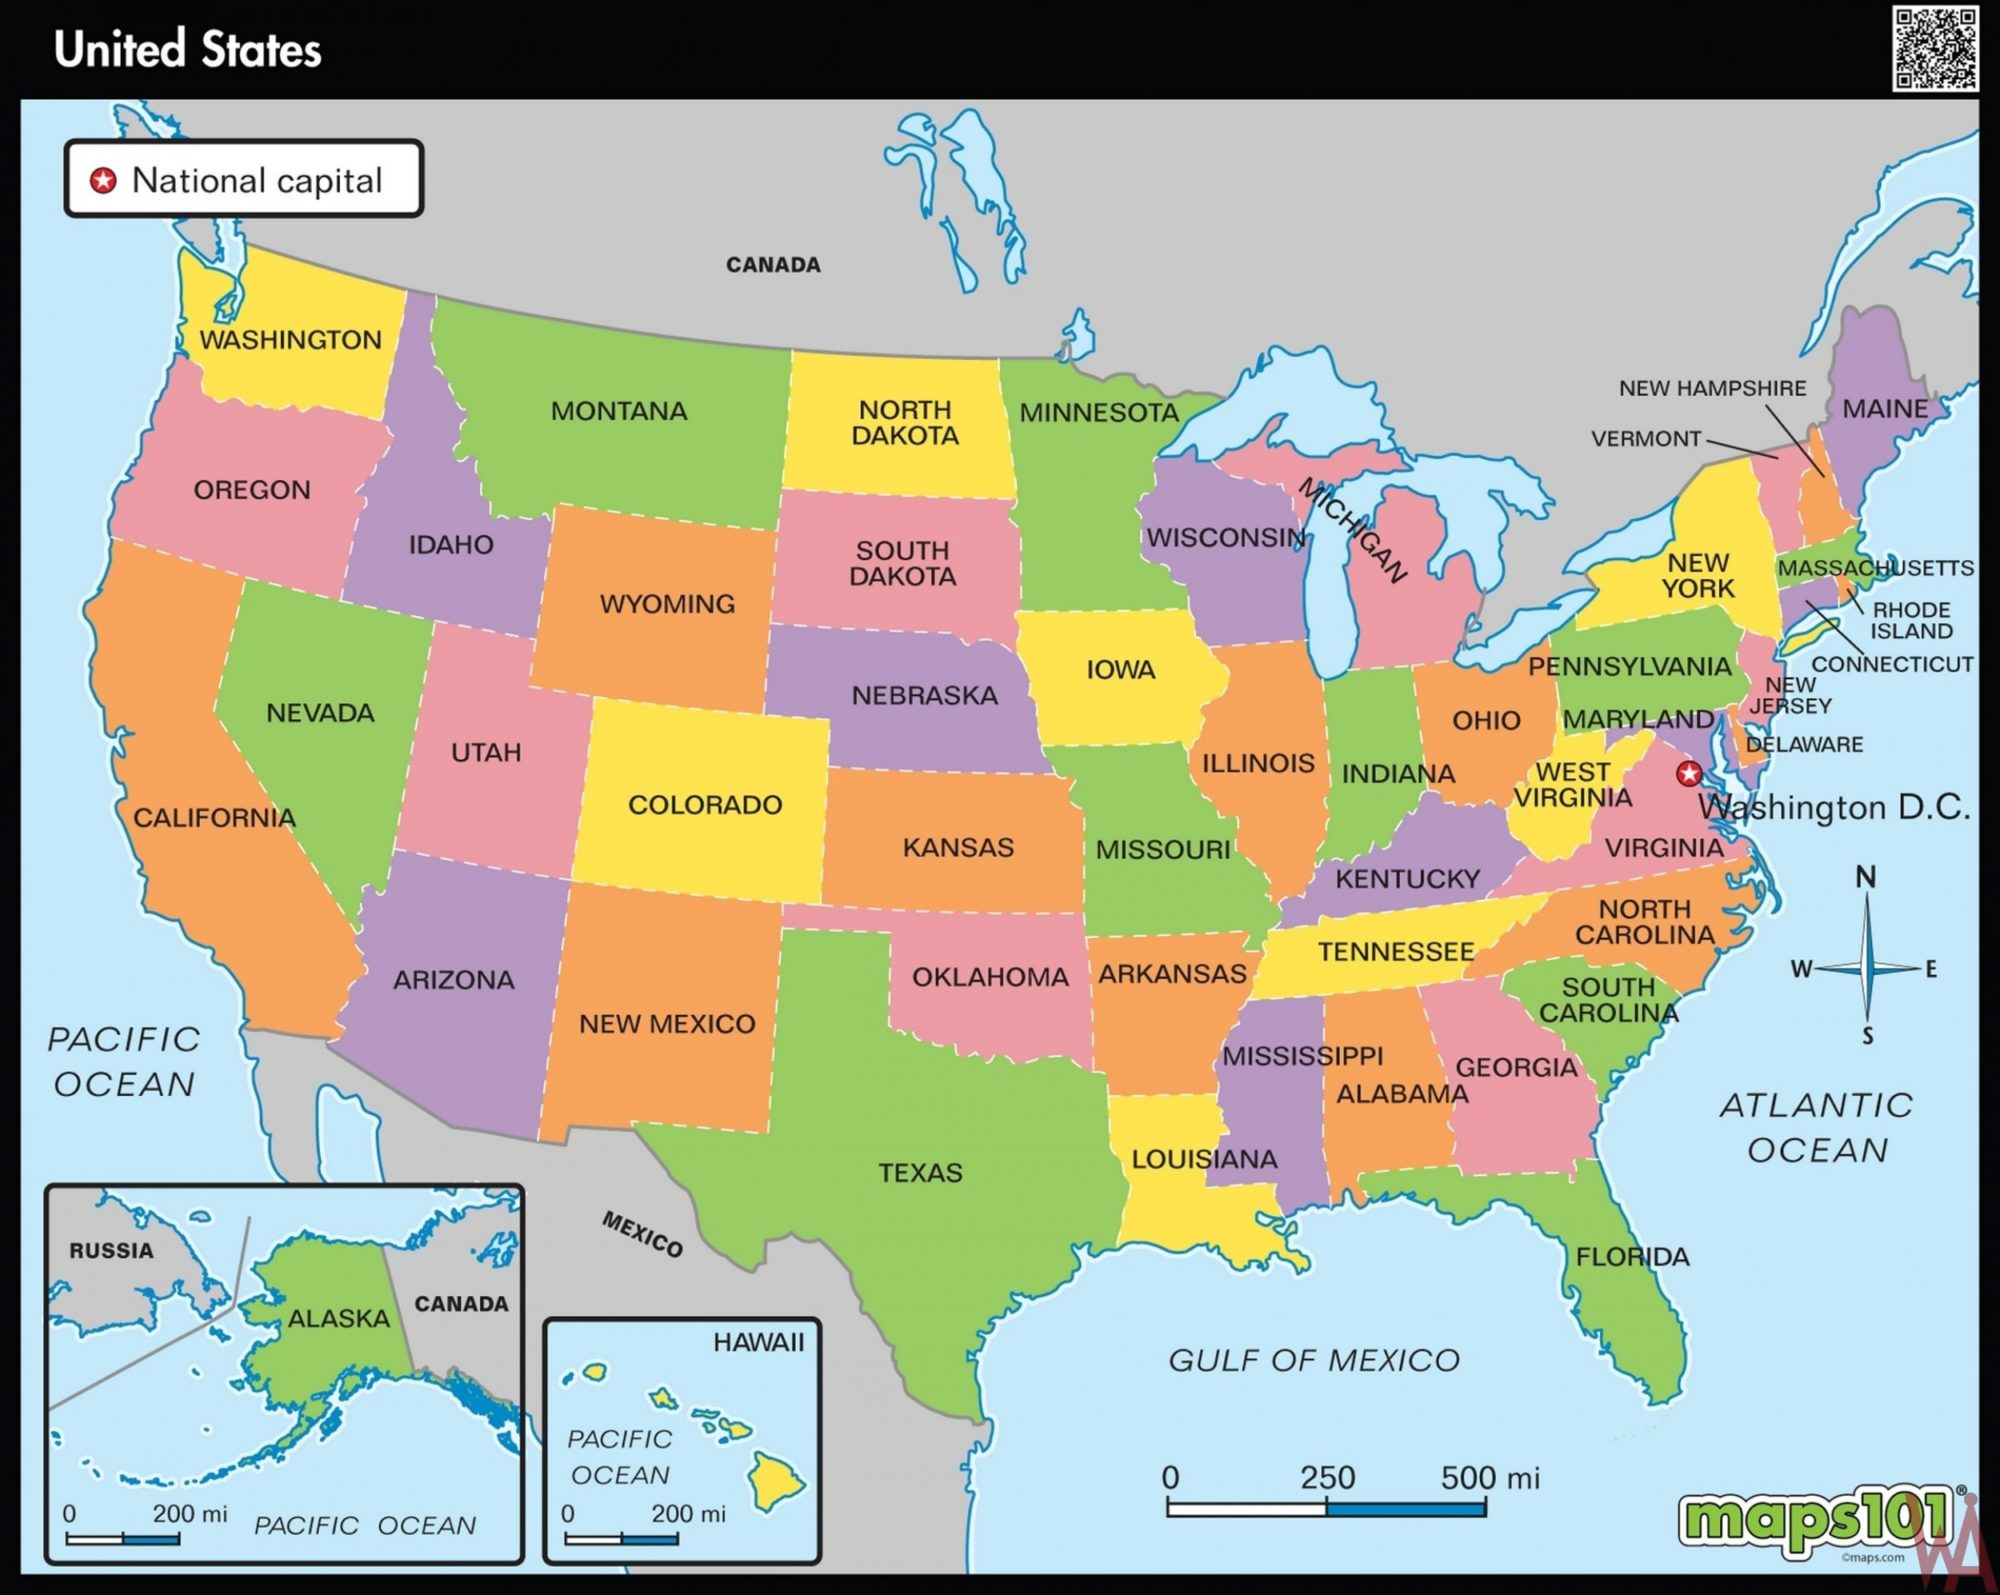 Elegant Hd Wallpaper Large State Map Of The US